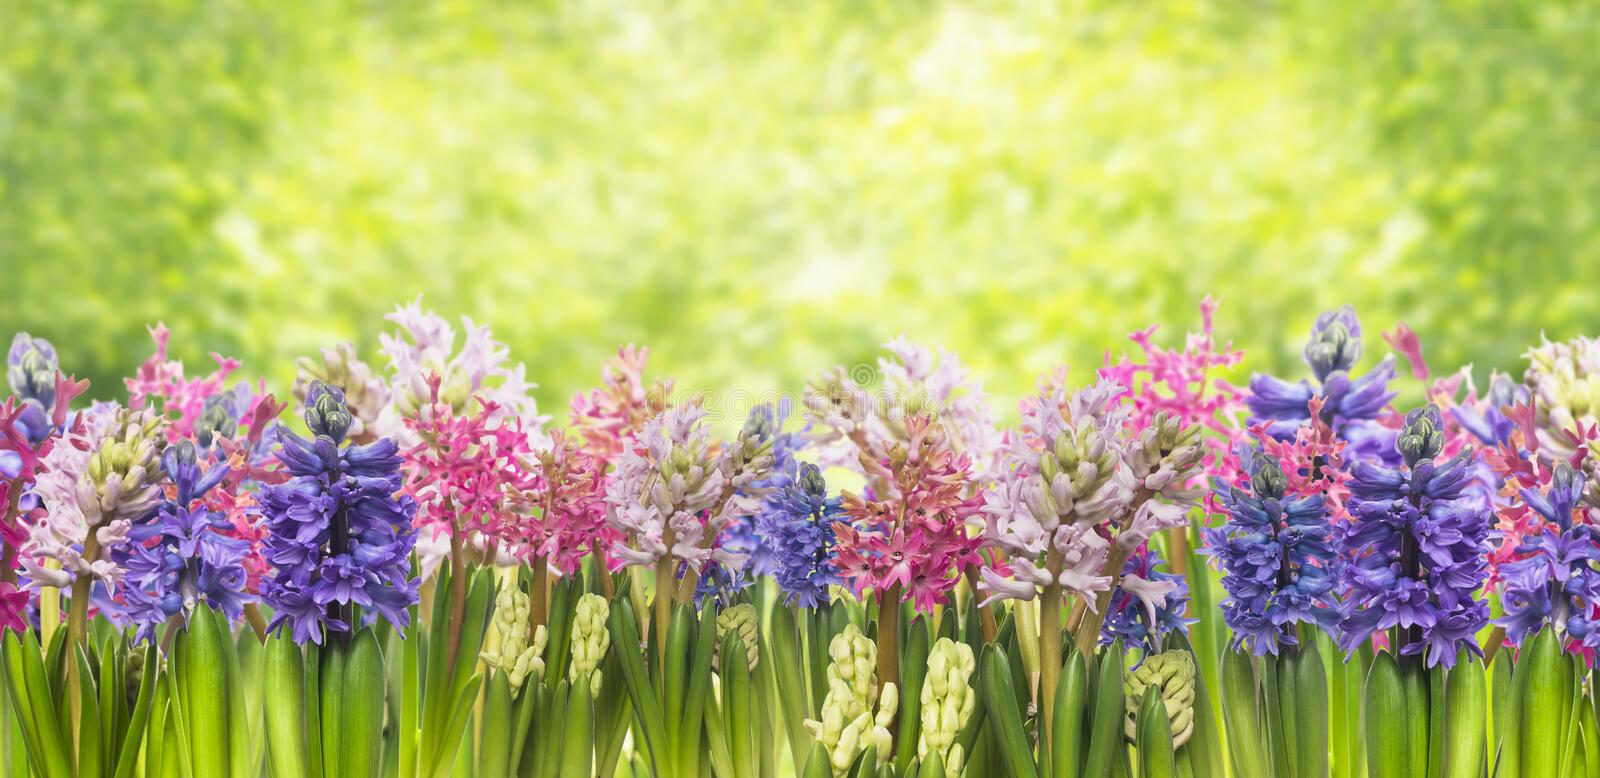 Blooming spring hyacinths flowers plant in garden royalty free stock photography